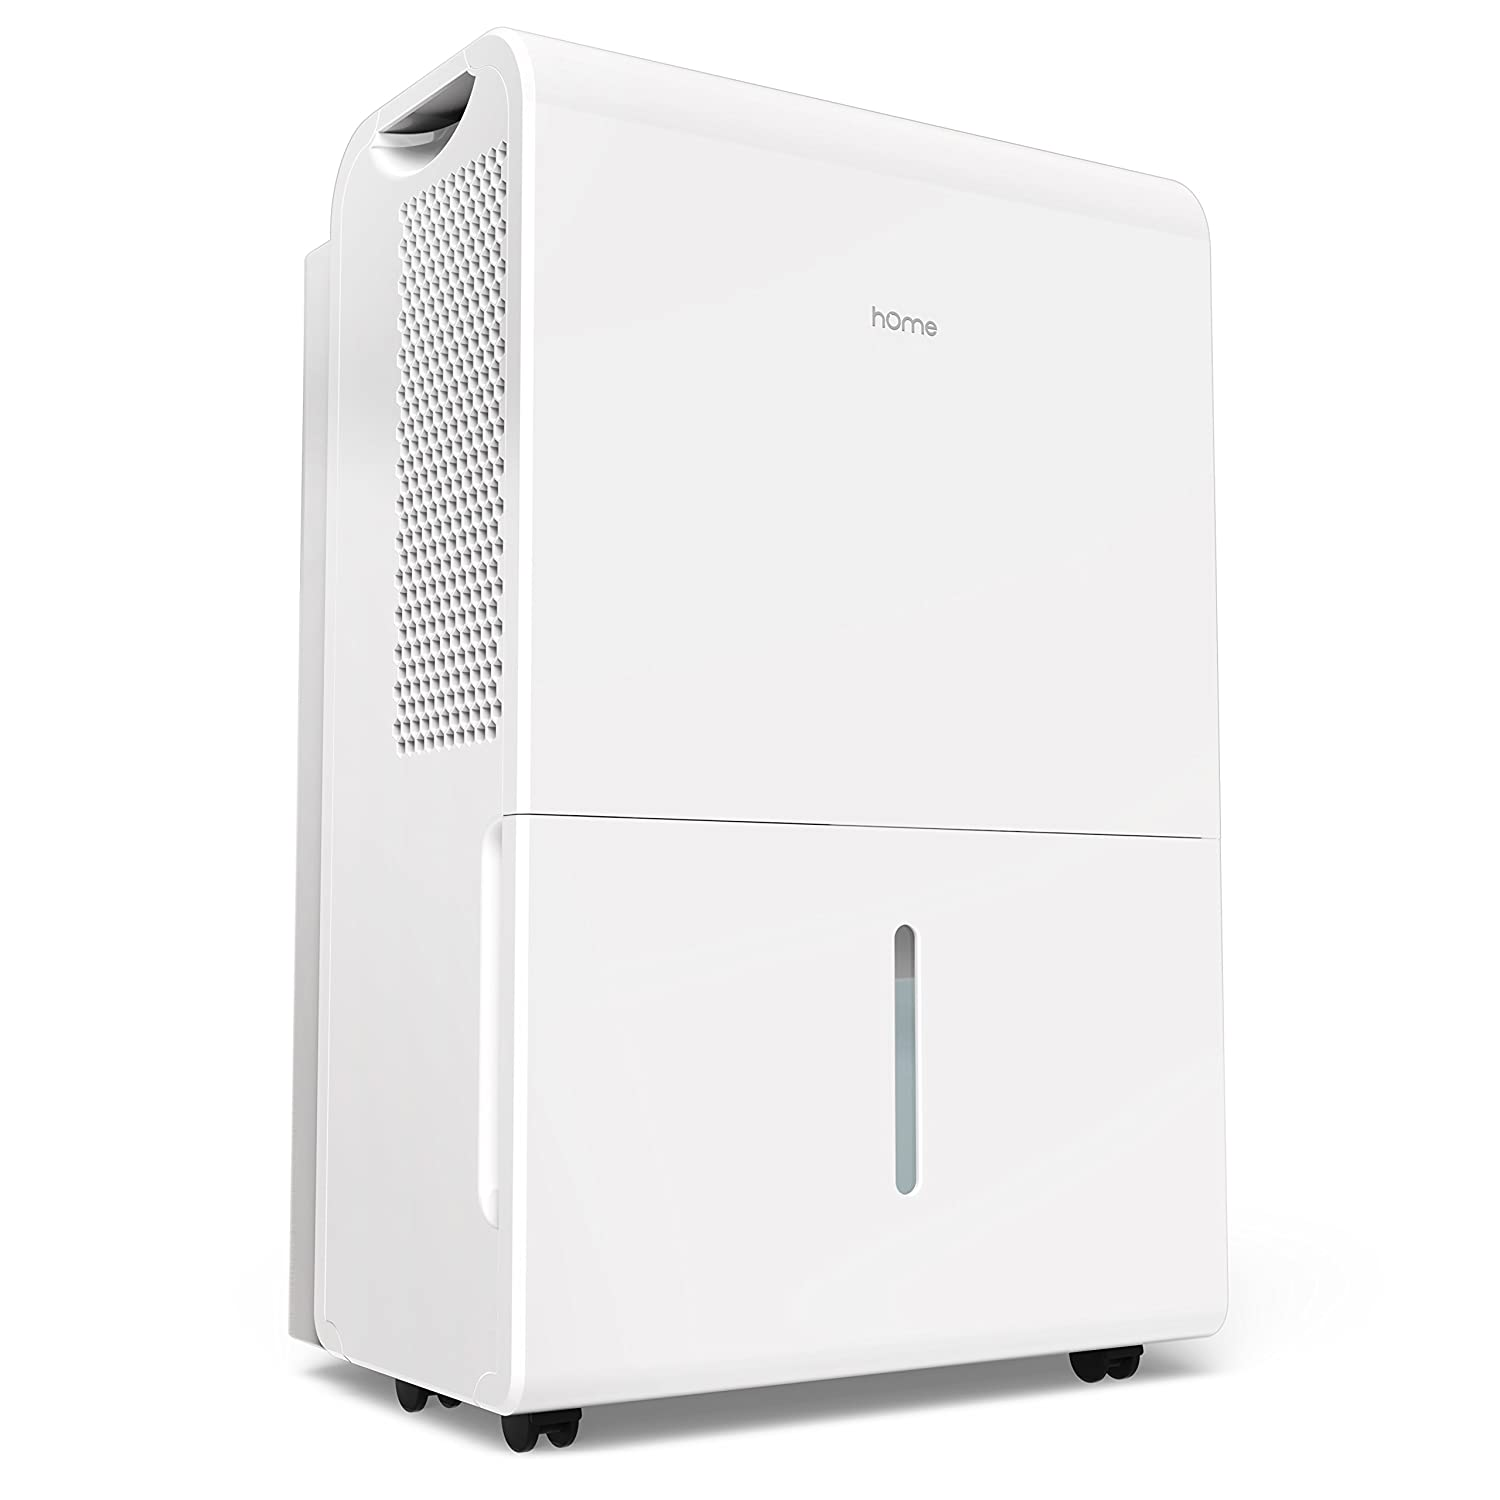 hOme 30 Pint Dehumidifier